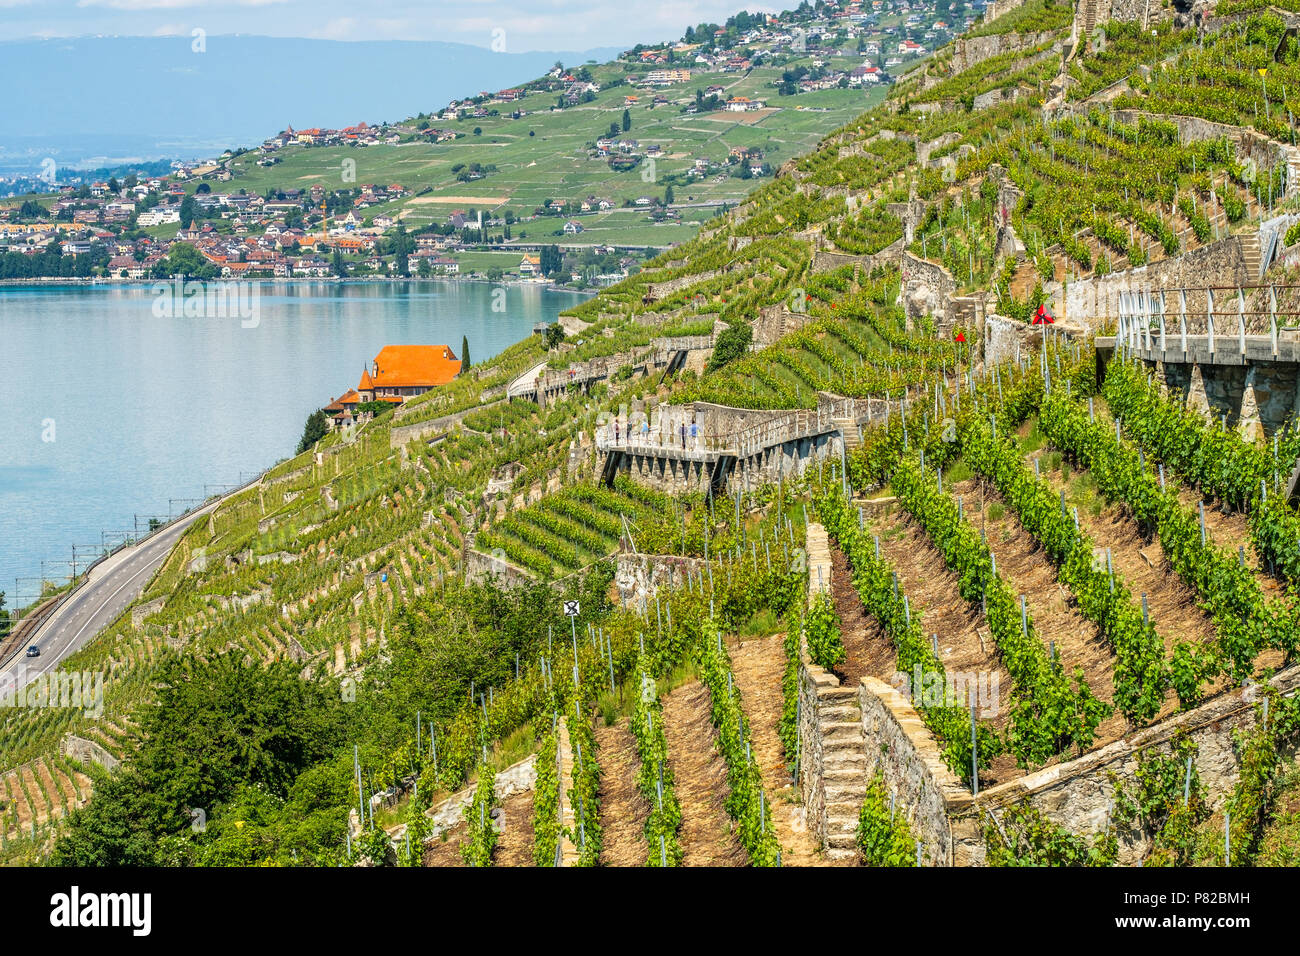 View on Lake Geneva in the direction of Lausanne from the beautiful Lavaux wine terrasses area in Switzerland - Stock Image